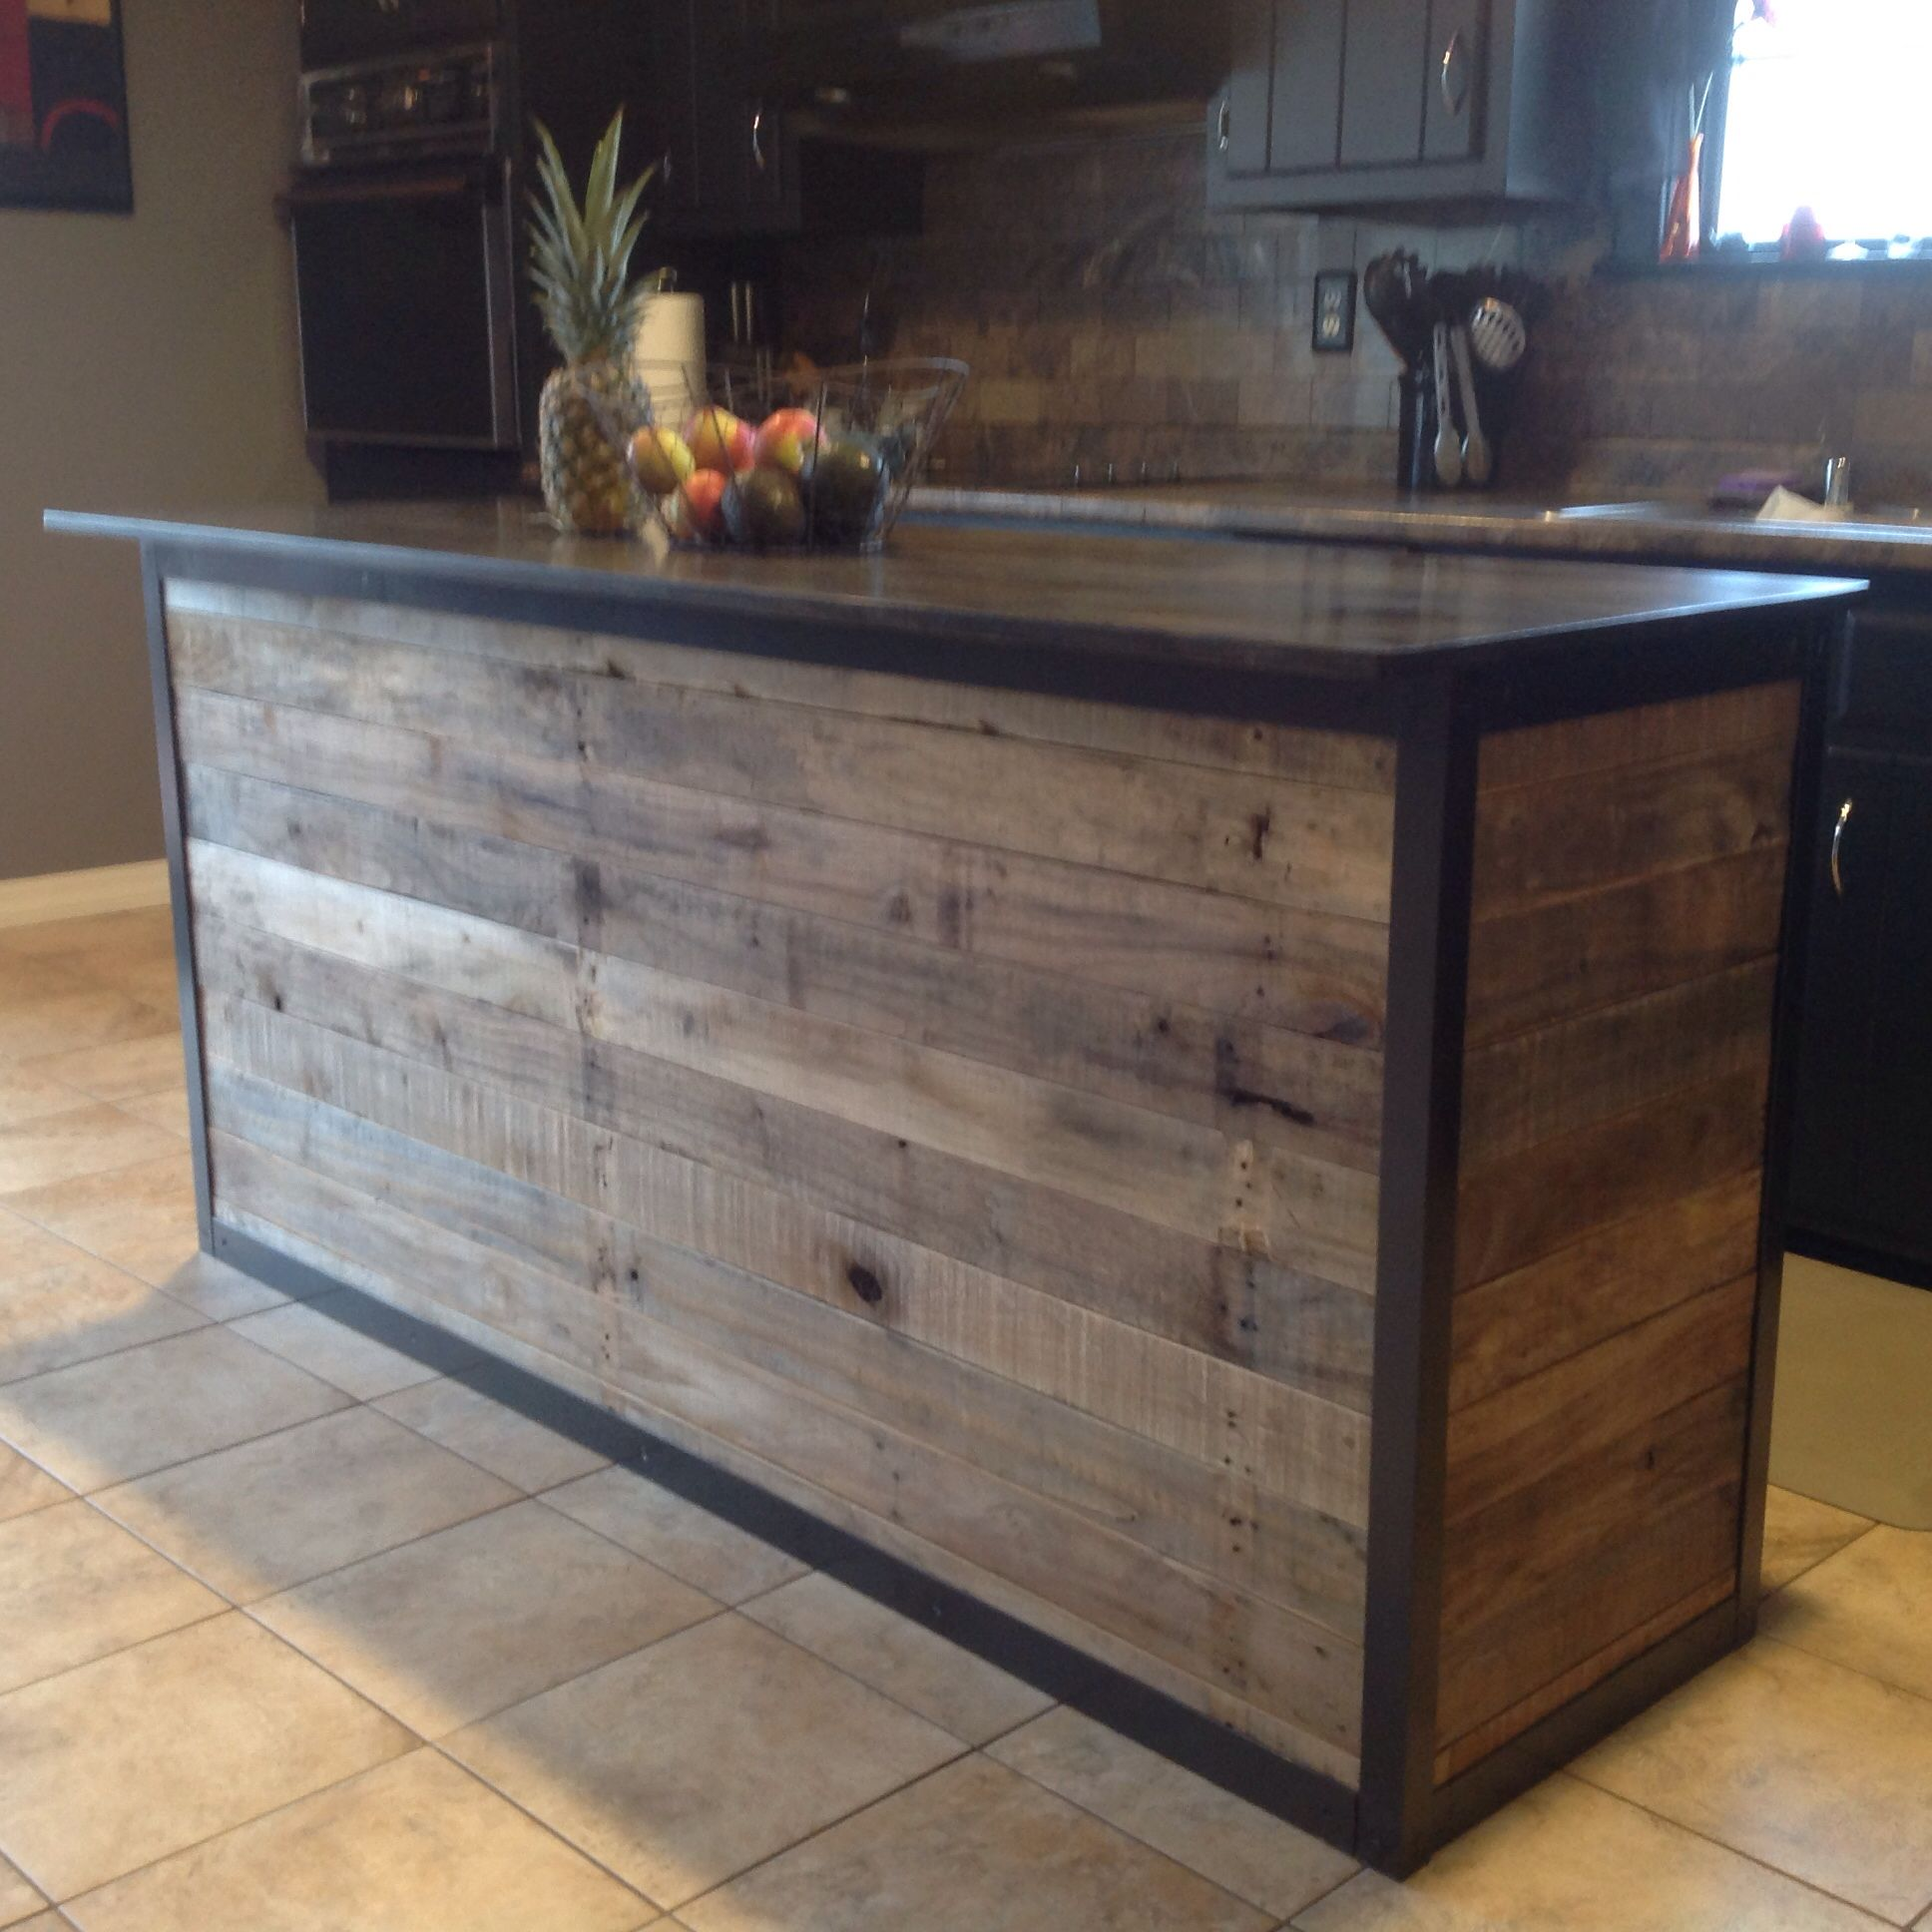 Diy kitchen island made from pallet wood house ideas for Construire un bar exterieur en bois